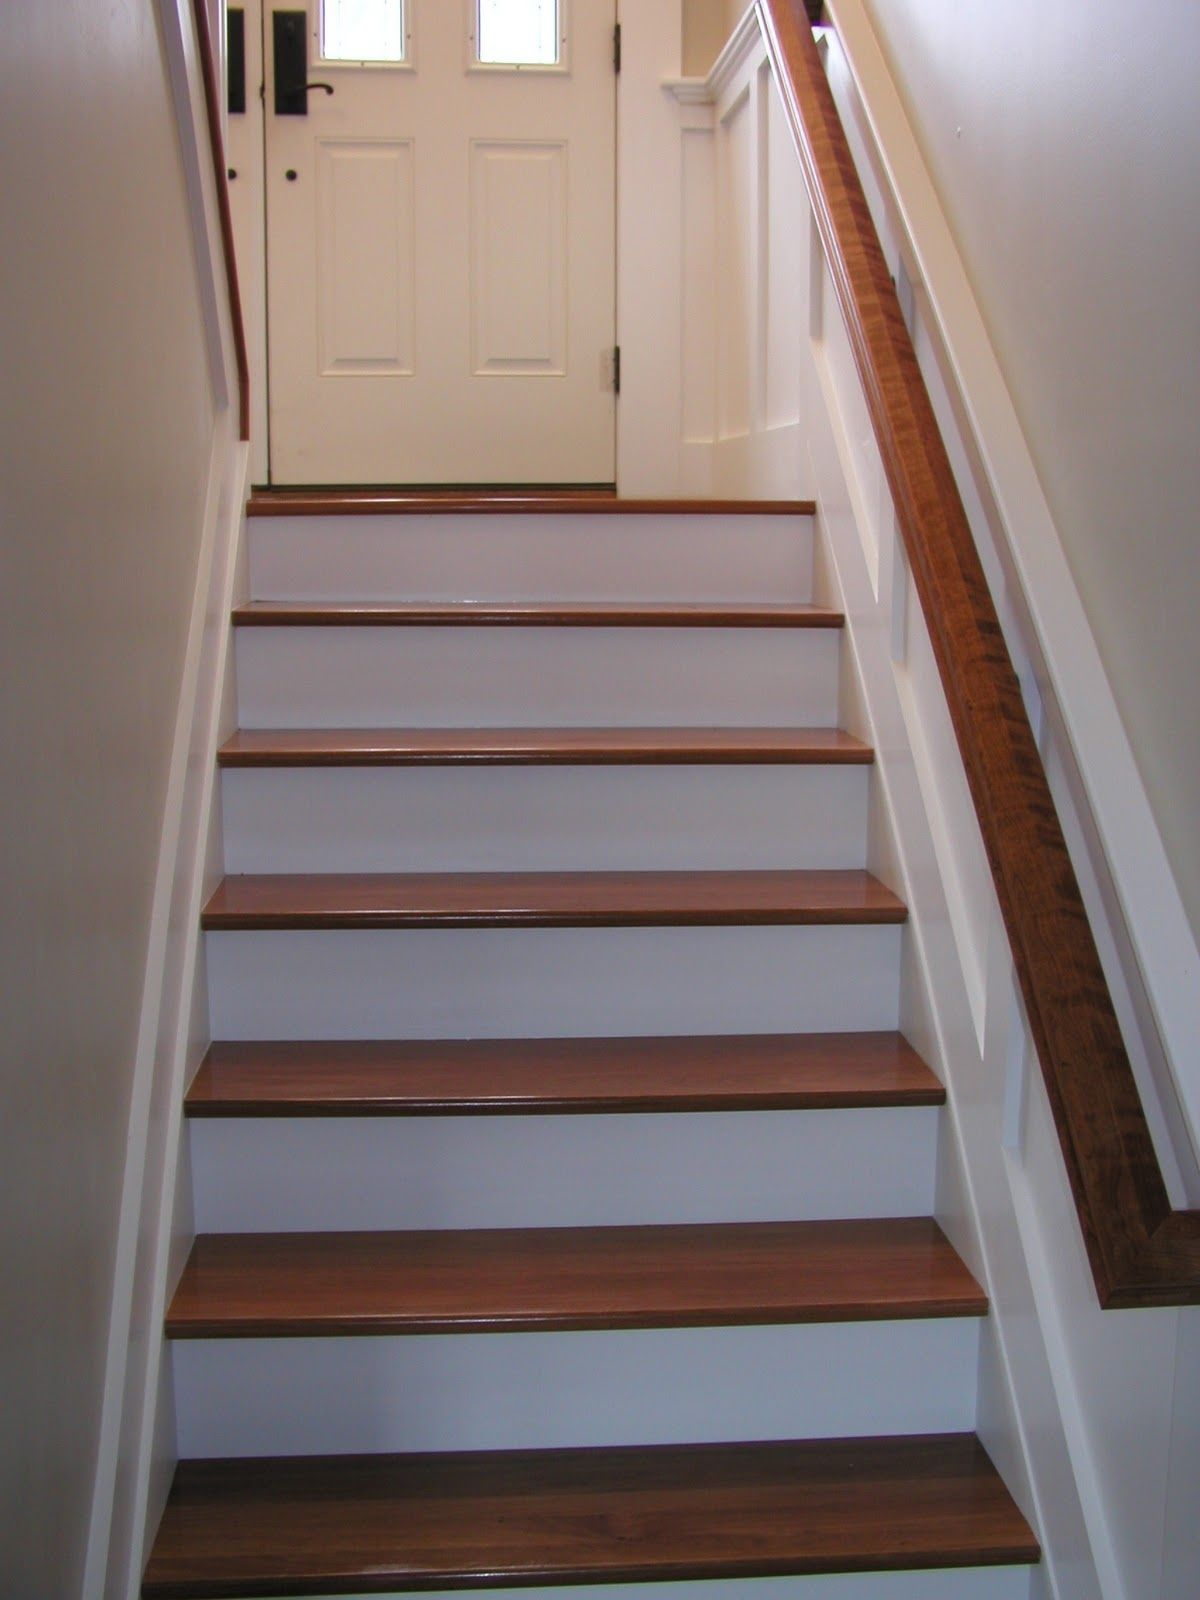 Best Horizontal Wainscoting In Stairs With Wood Handrail 400 x 300